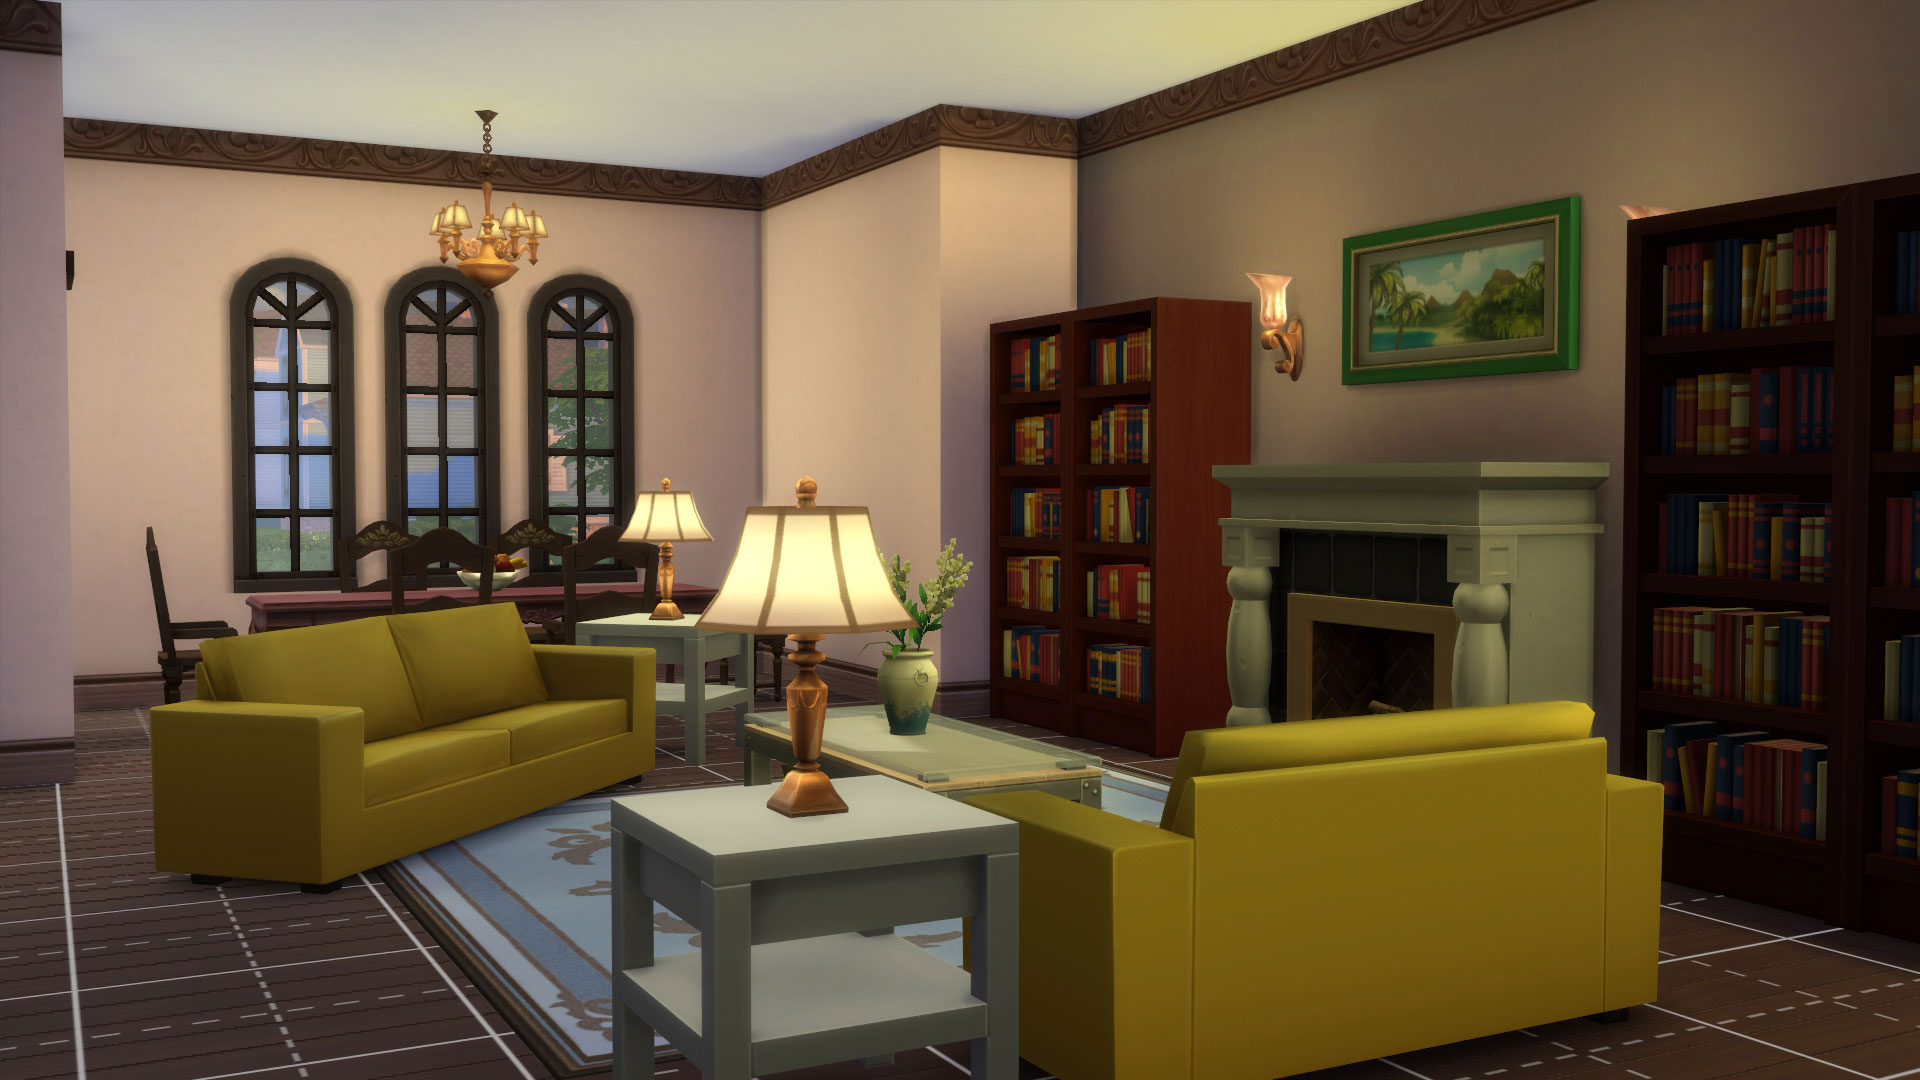 Mod The Sims - 4 Windsor Grove - 4 Bedroom Family Home